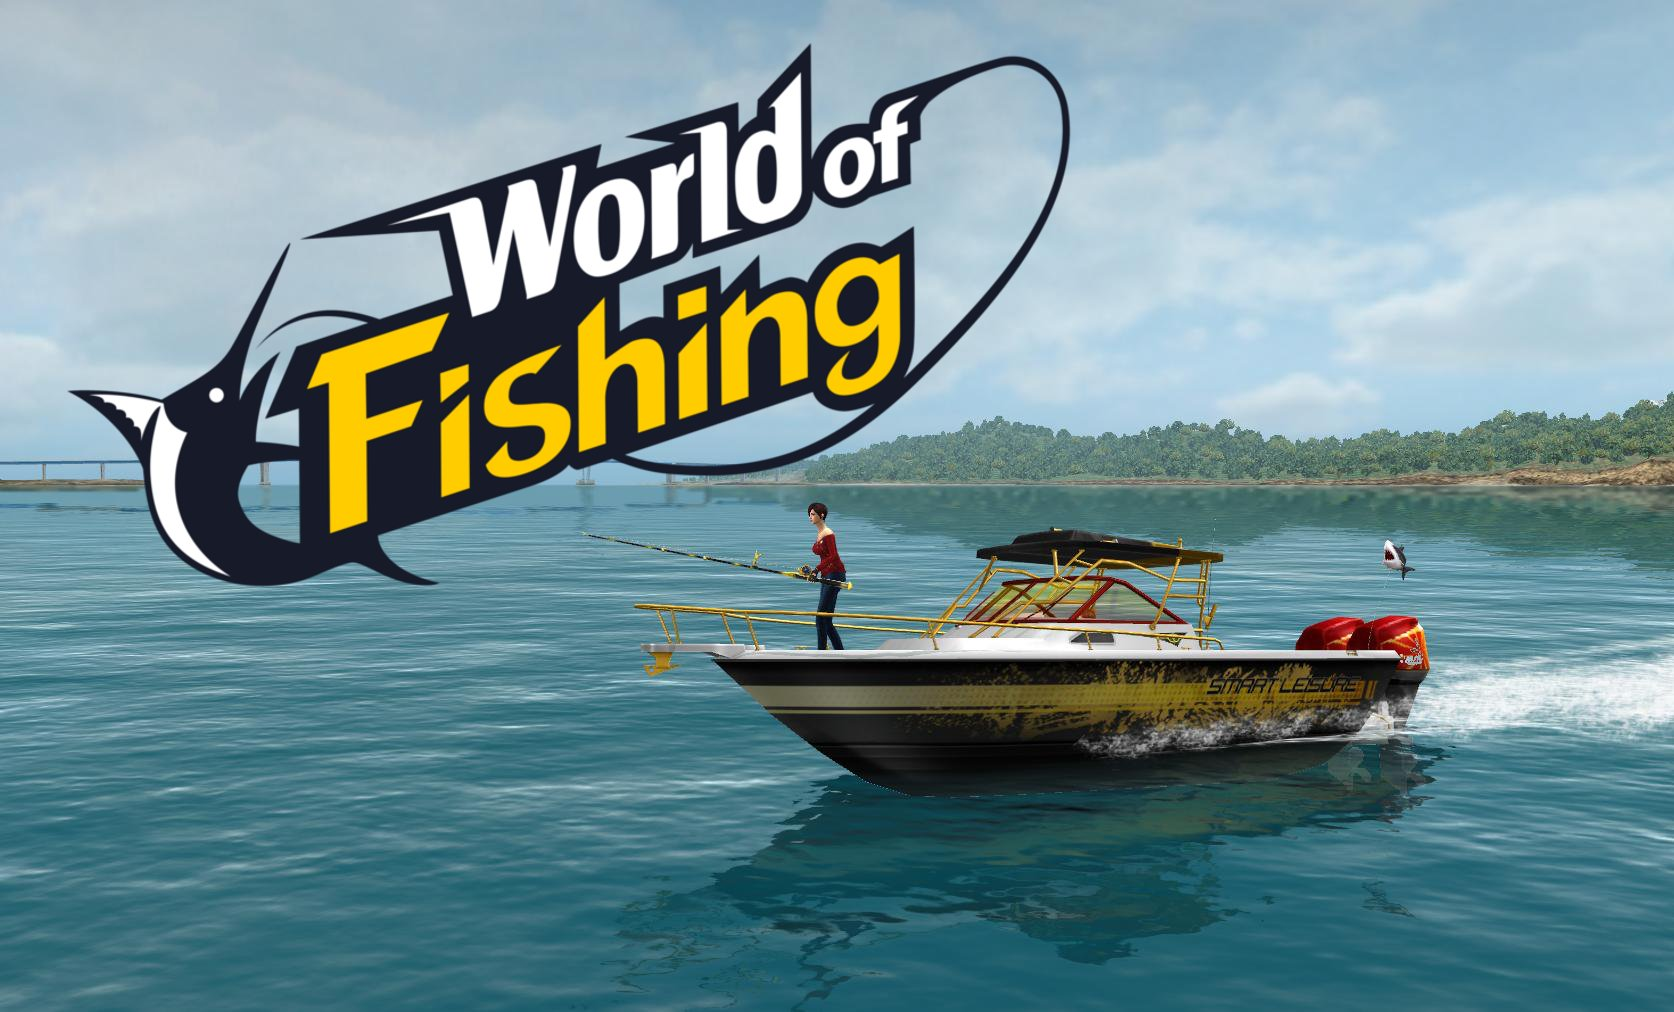 World of fishing archives gamerevolution for Fishing world game